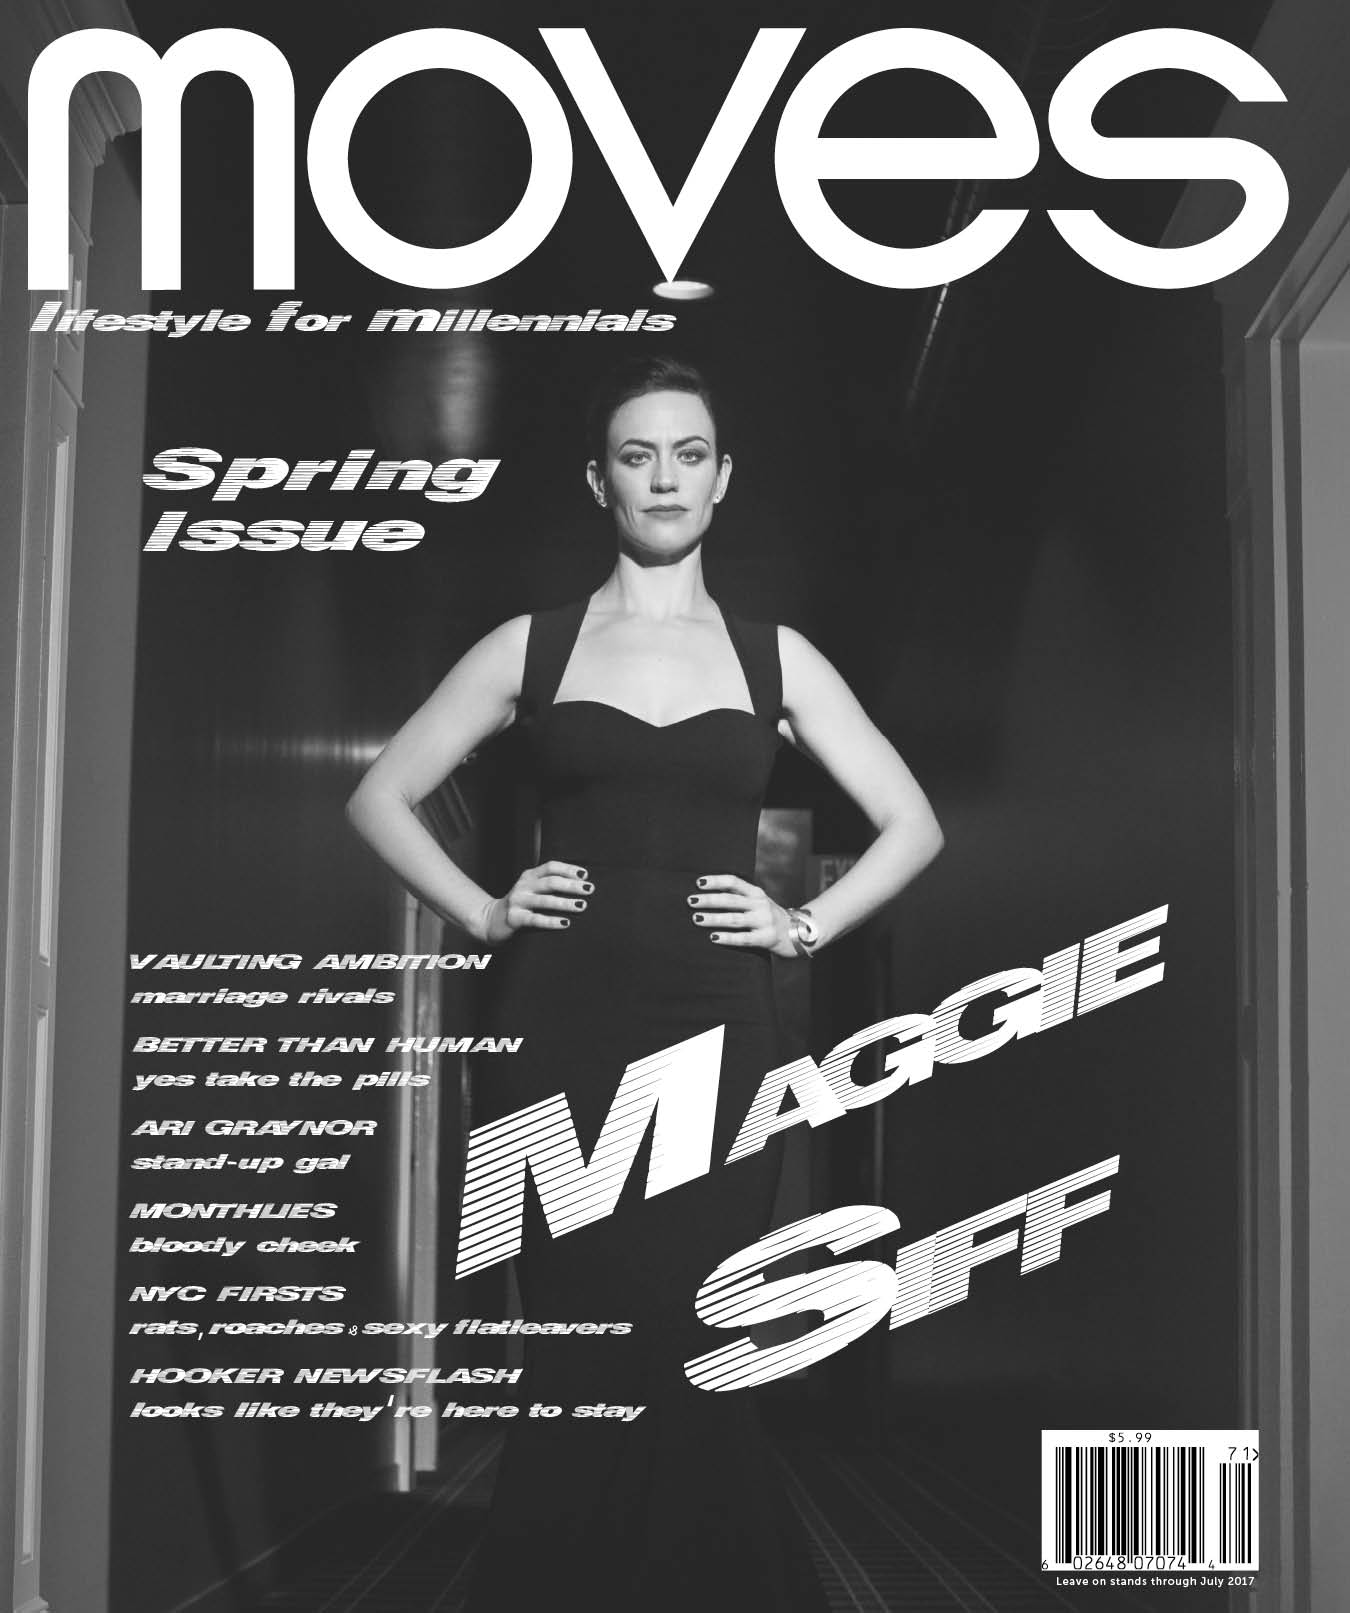 siff_cover2_BS